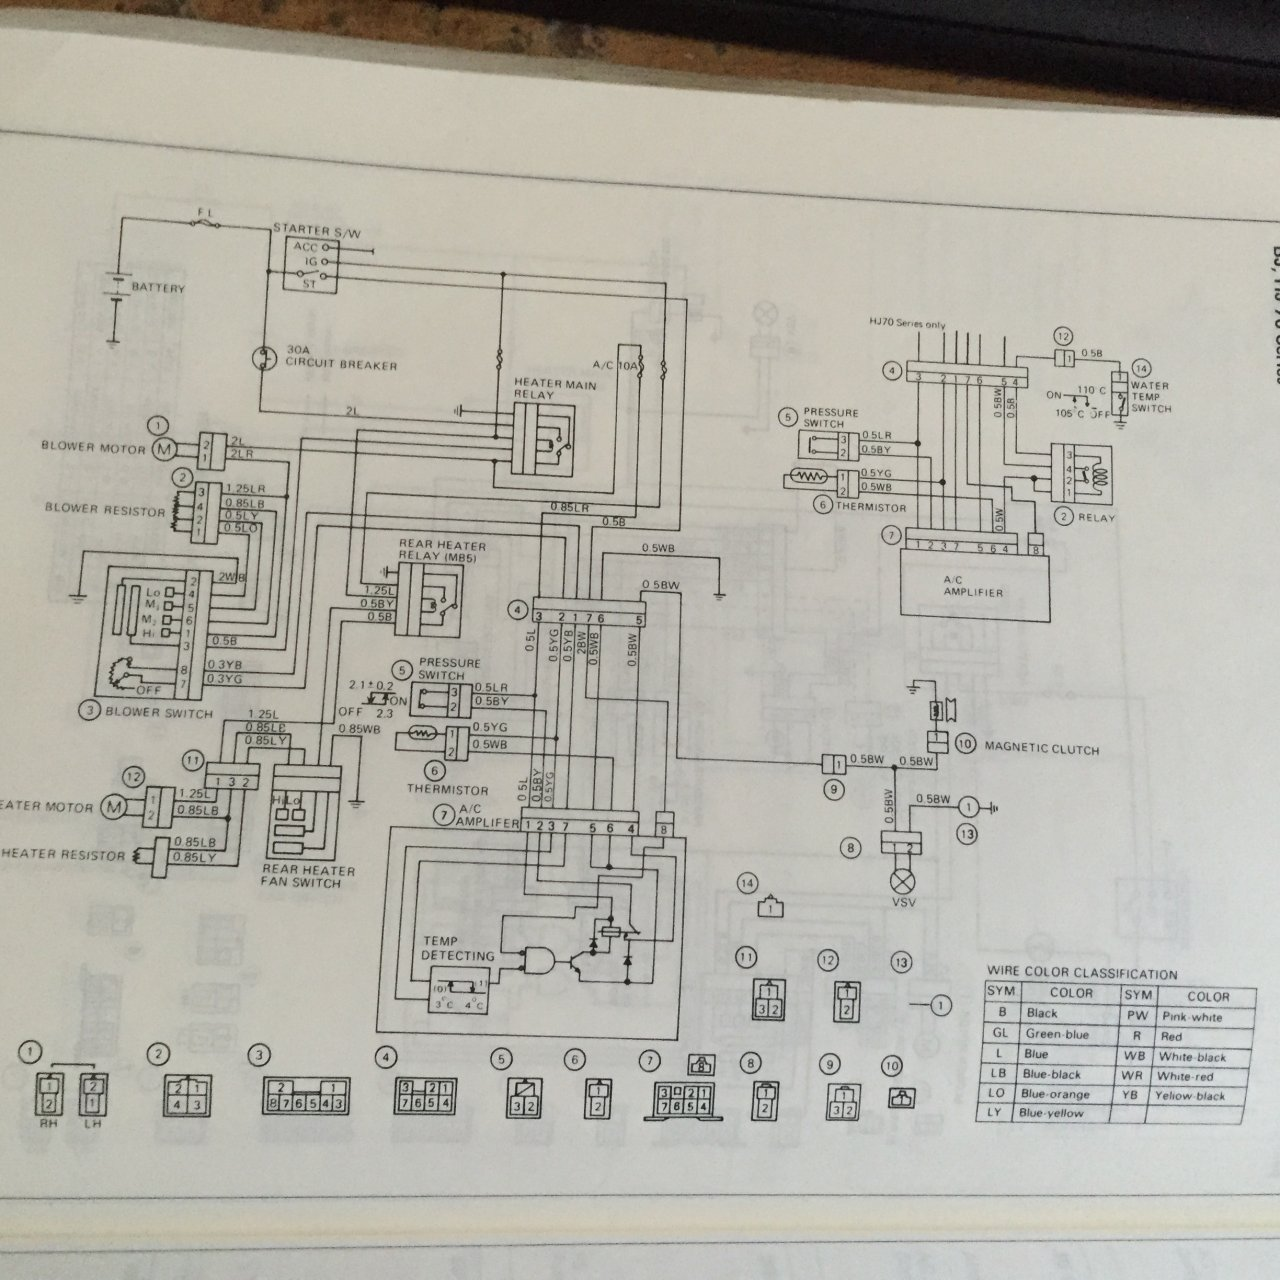 hight resolution of crazy wiring connection ih8mud forum internet of things diagrams bj74 wiring diagram